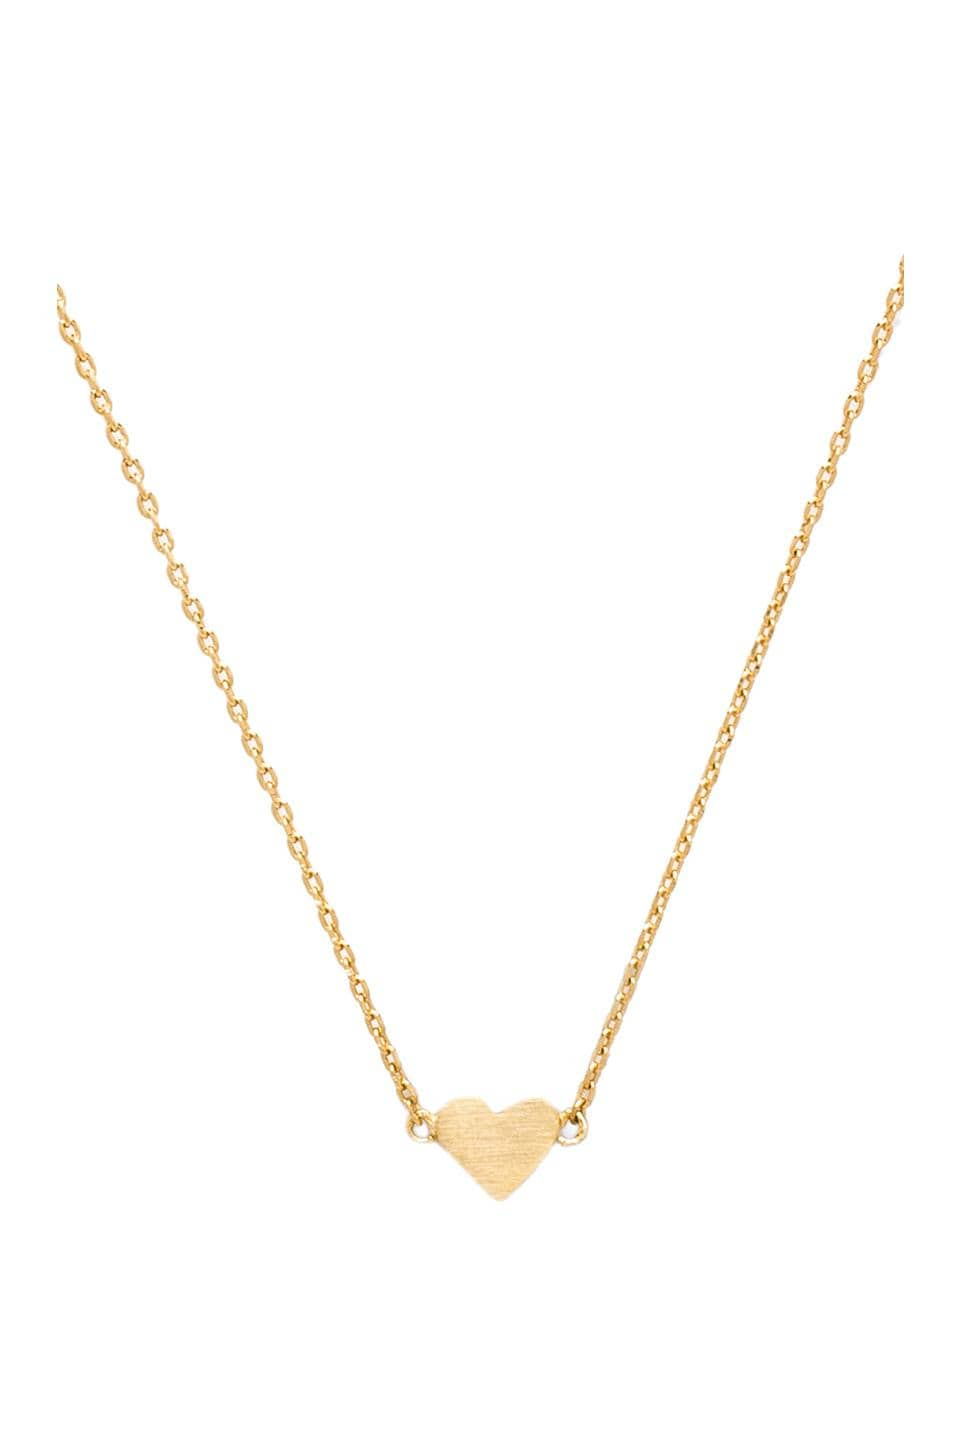 Stella and Bow Courtney Love Necklace in Gold